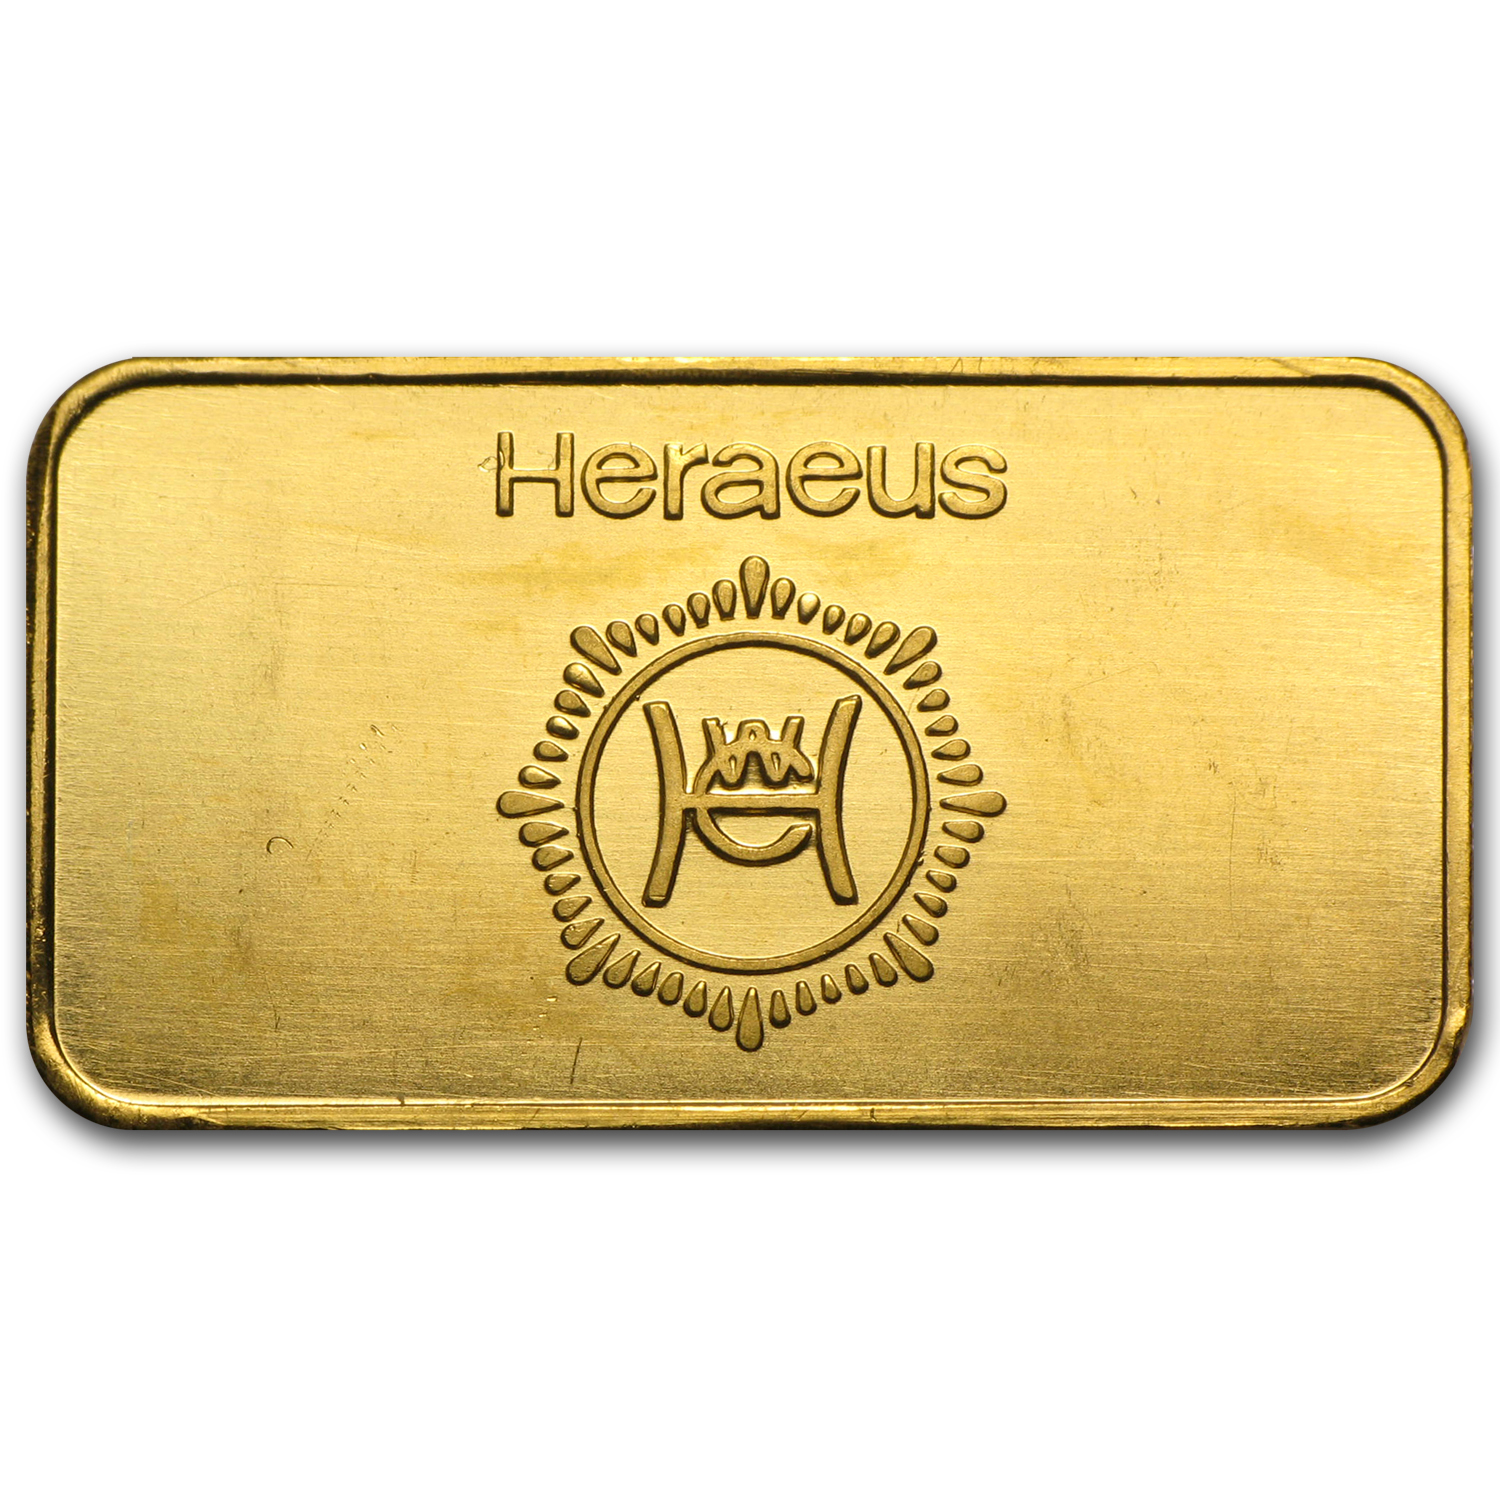 1/2 oz Gold Bar - Heraeus (RNB)